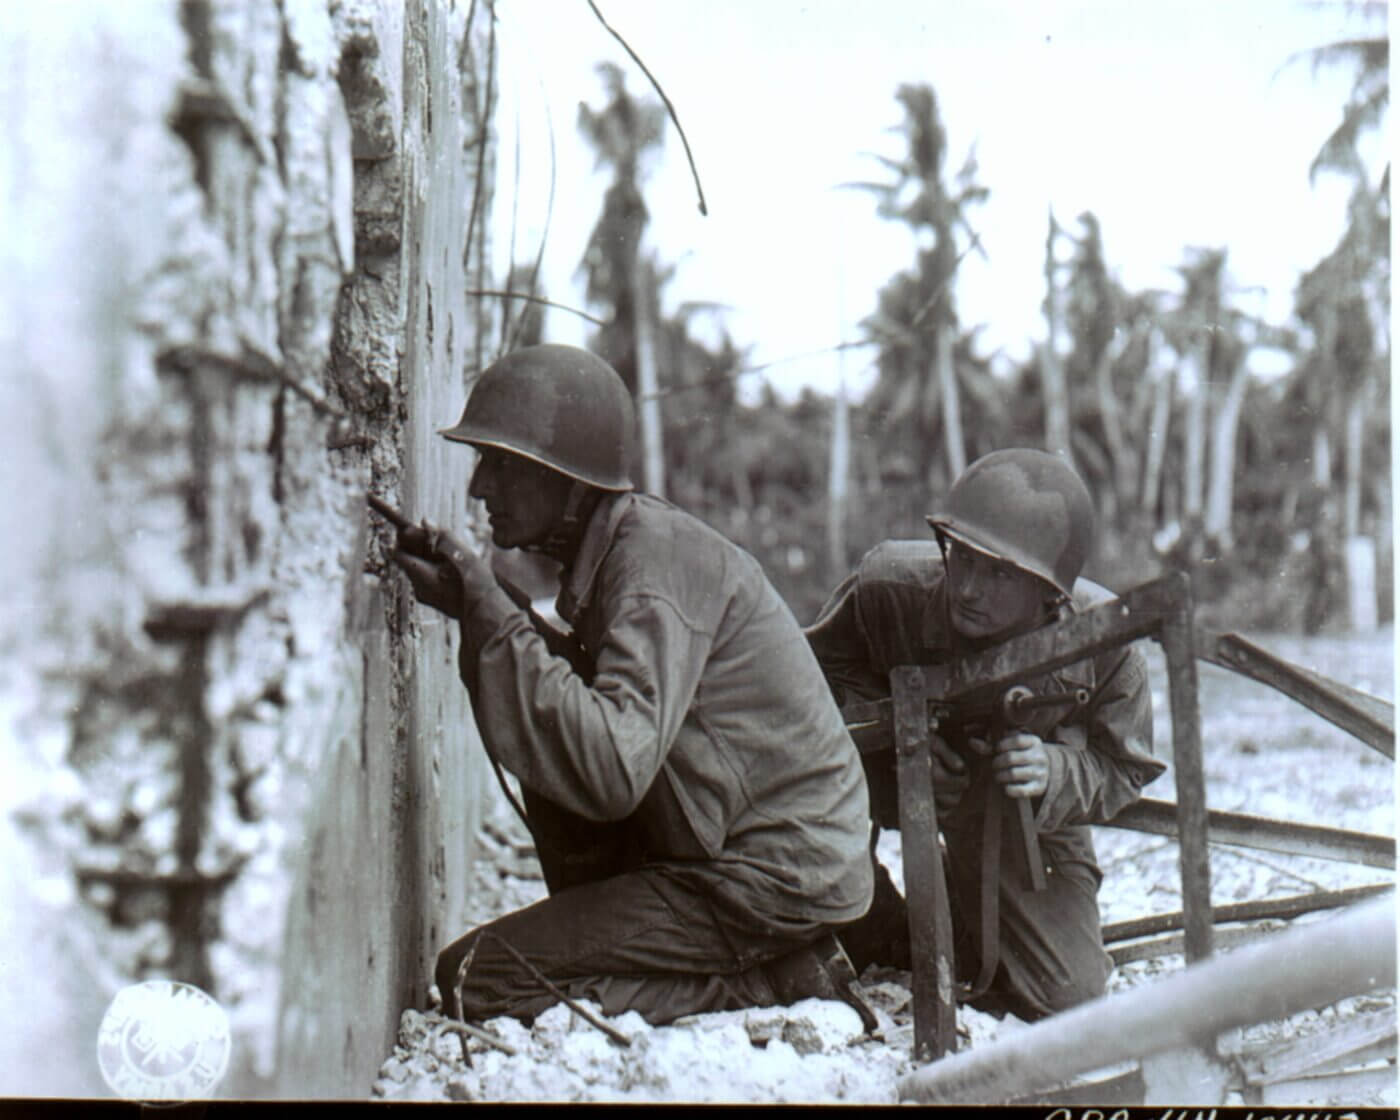 GIs of the 81st Division on Ulithi Atoll